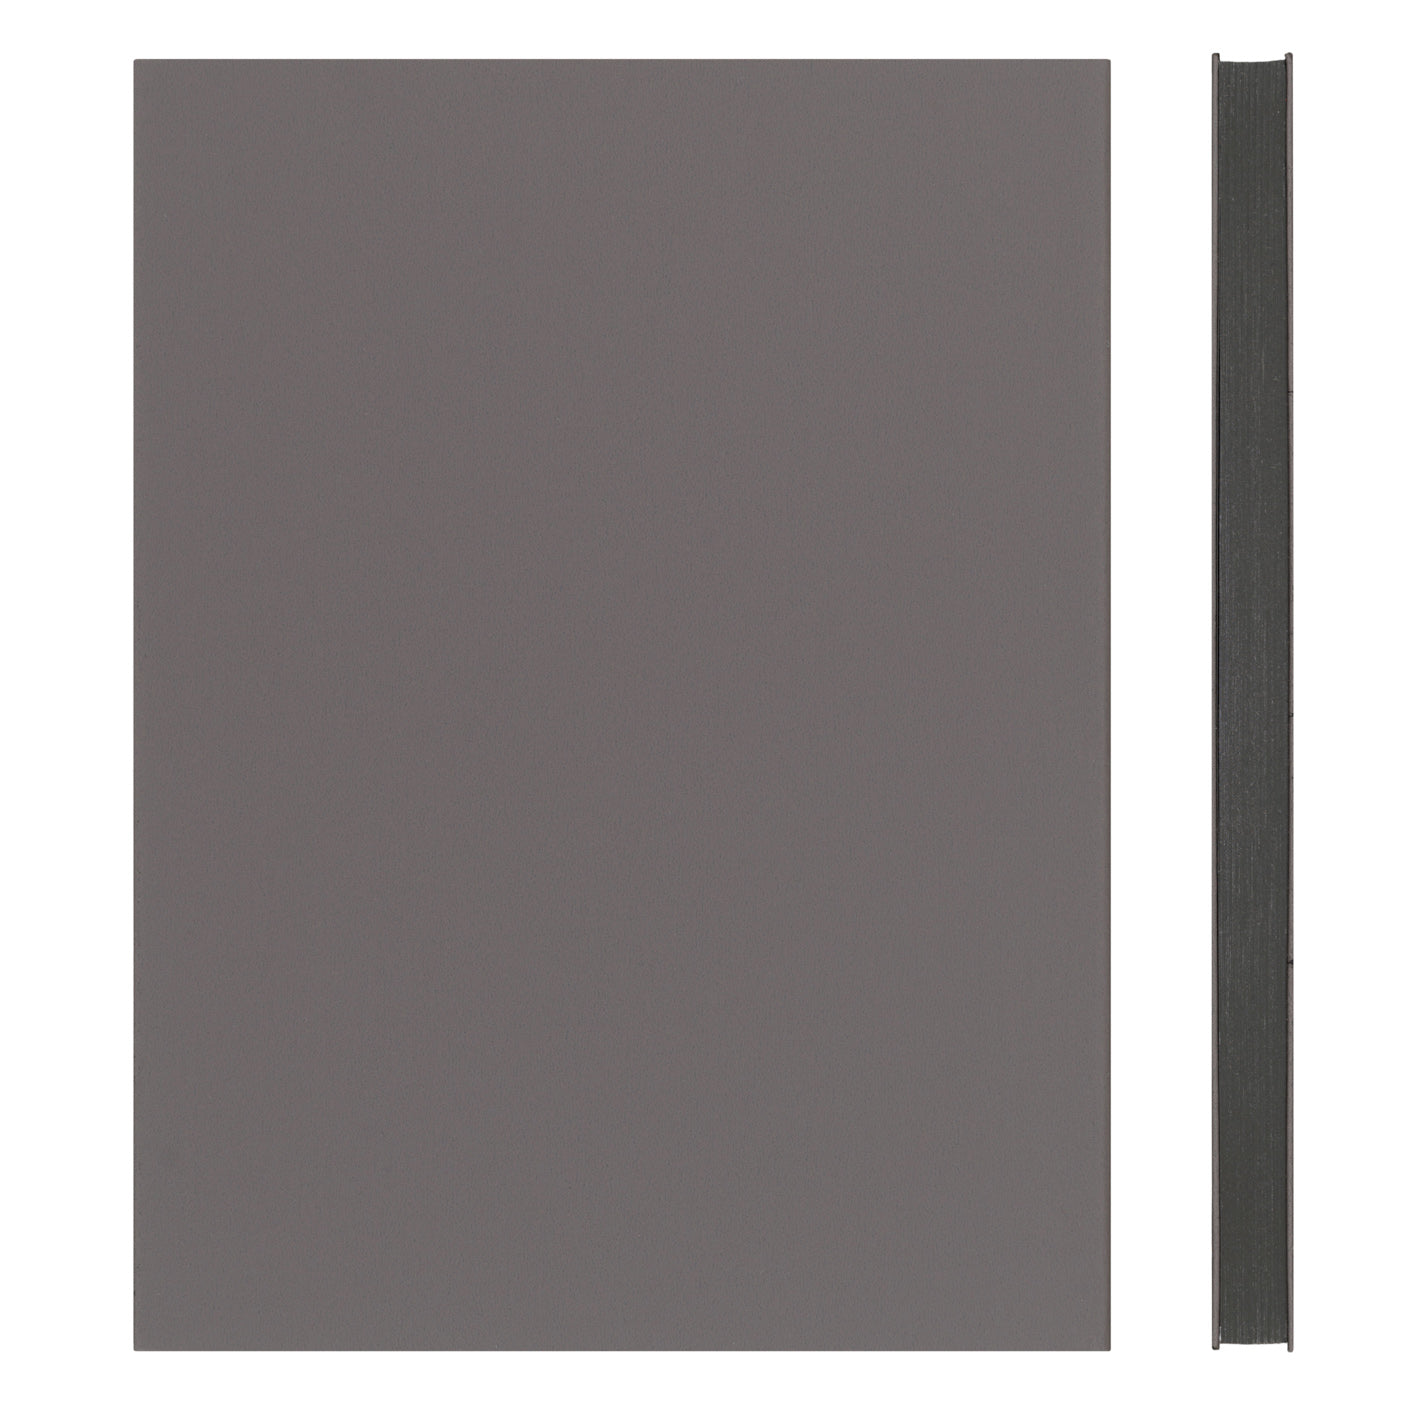 MEMMO FP Soft Touch Cover Lined Notebook A5, Charcoal